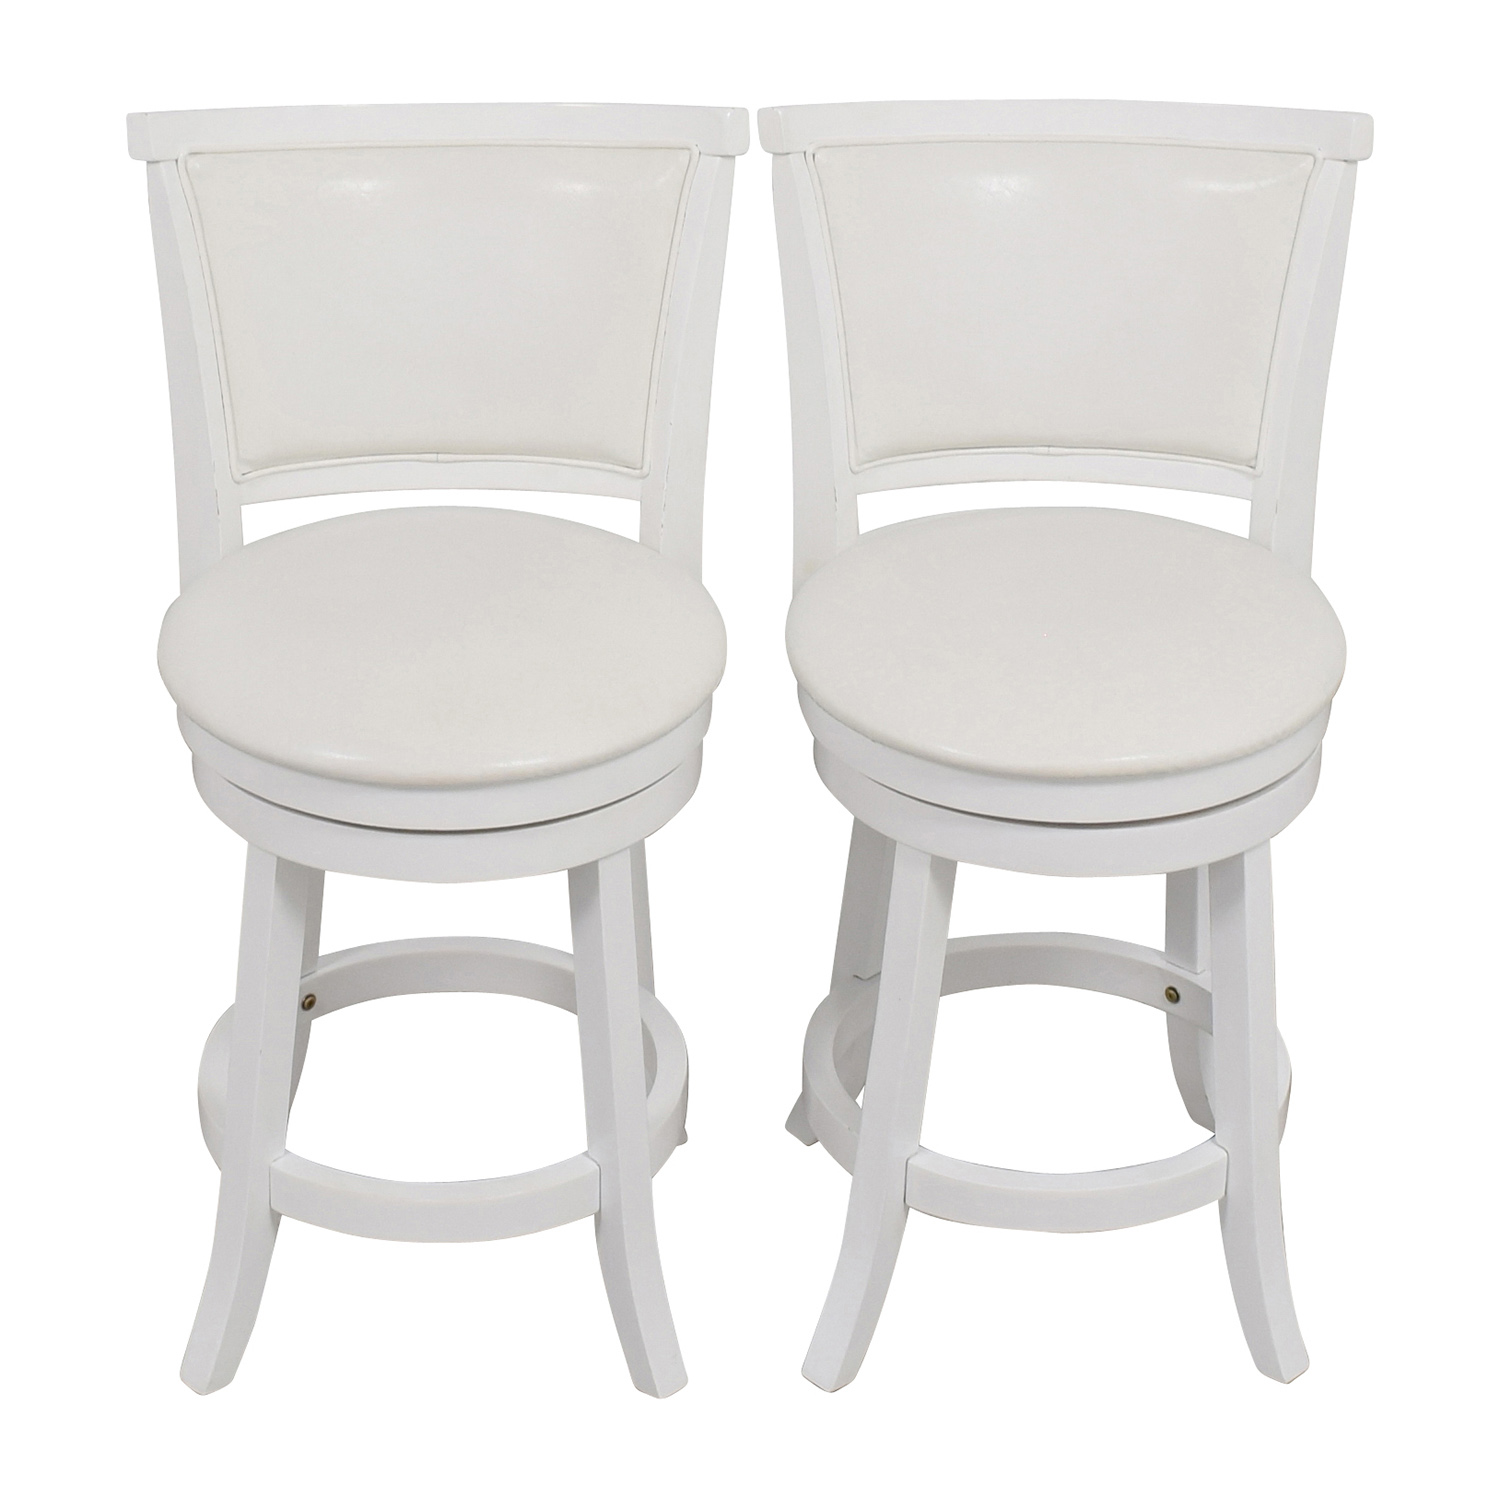 CorLiving CorLiving White Leatherette Swivel Counter Height Bar Stool Chairs